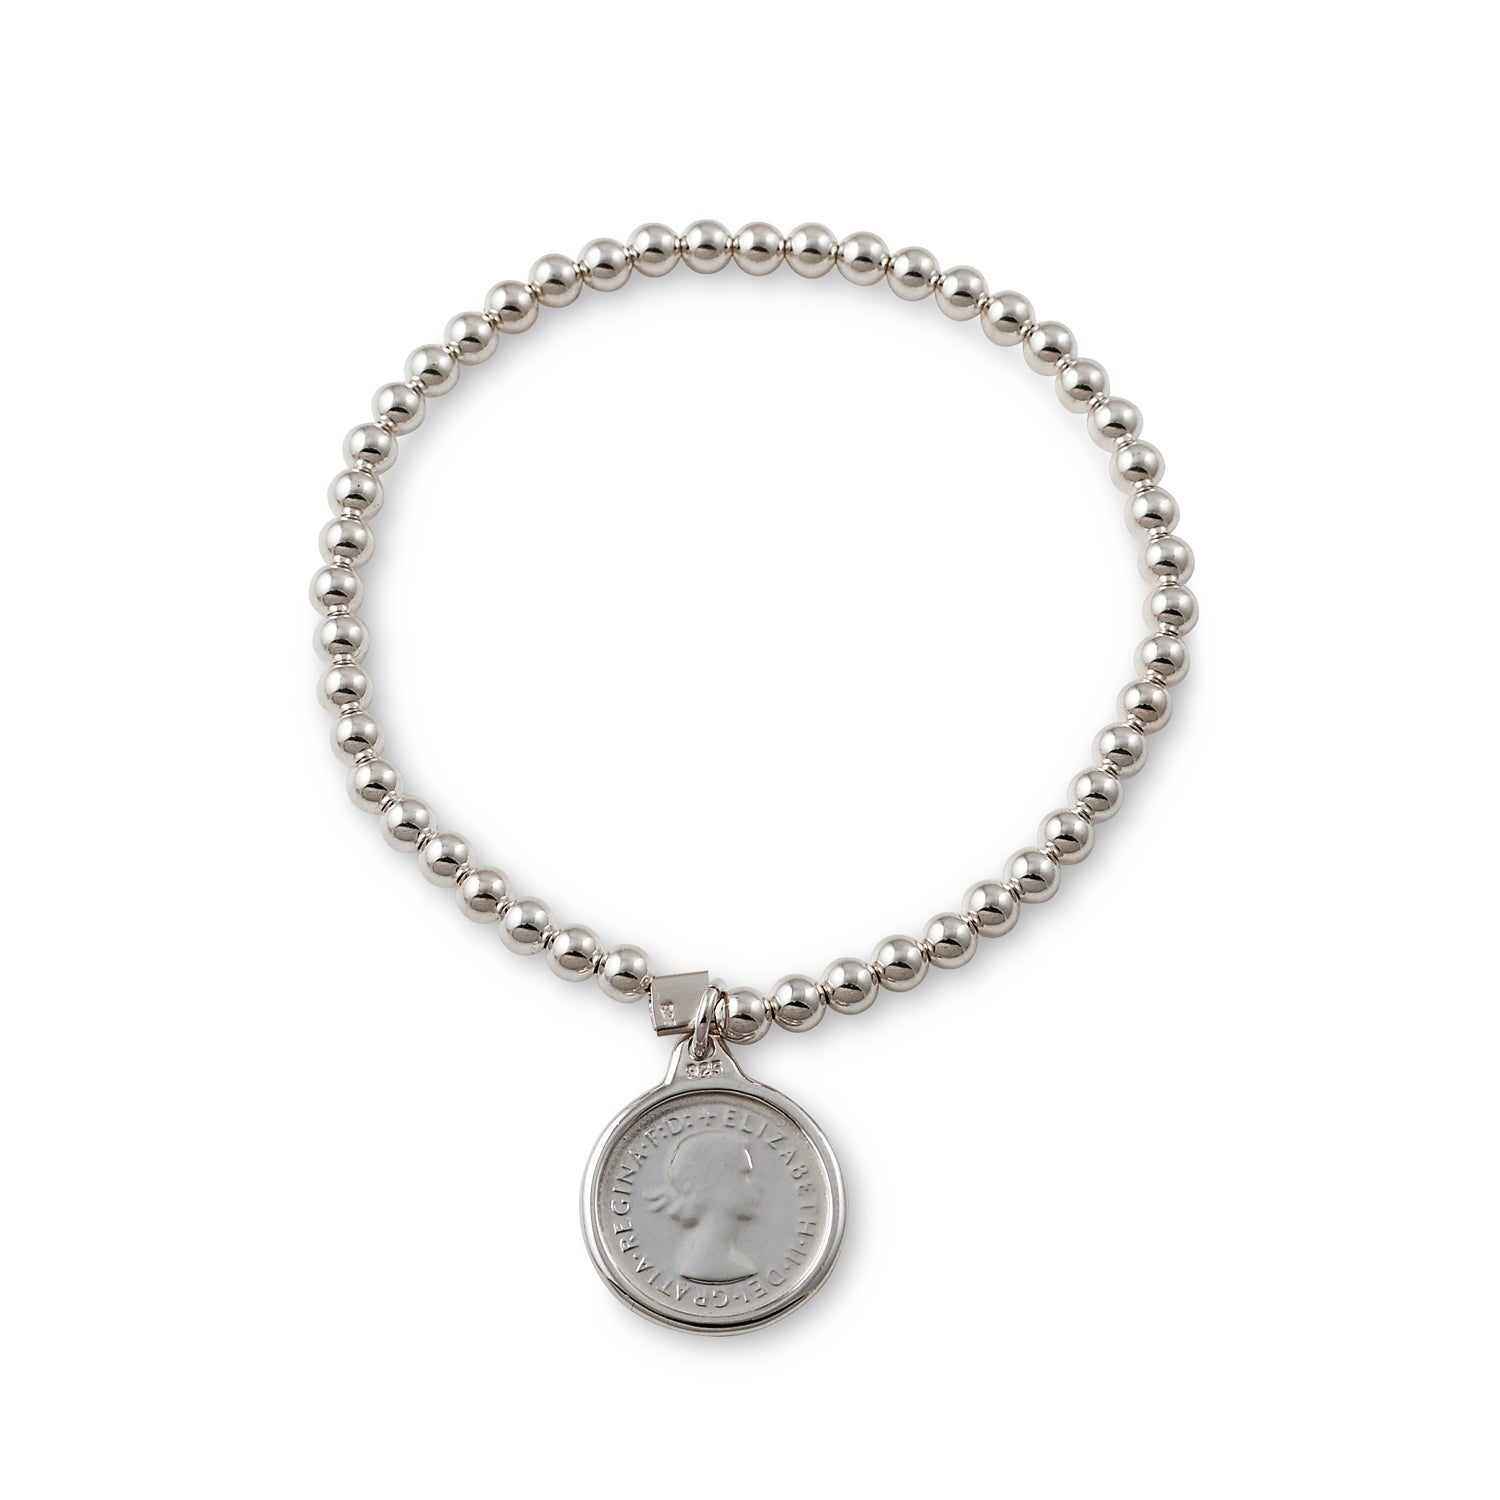 Von Treskow Sterling silver 4mm stretchy bracelet with authentic Australian threepence coin